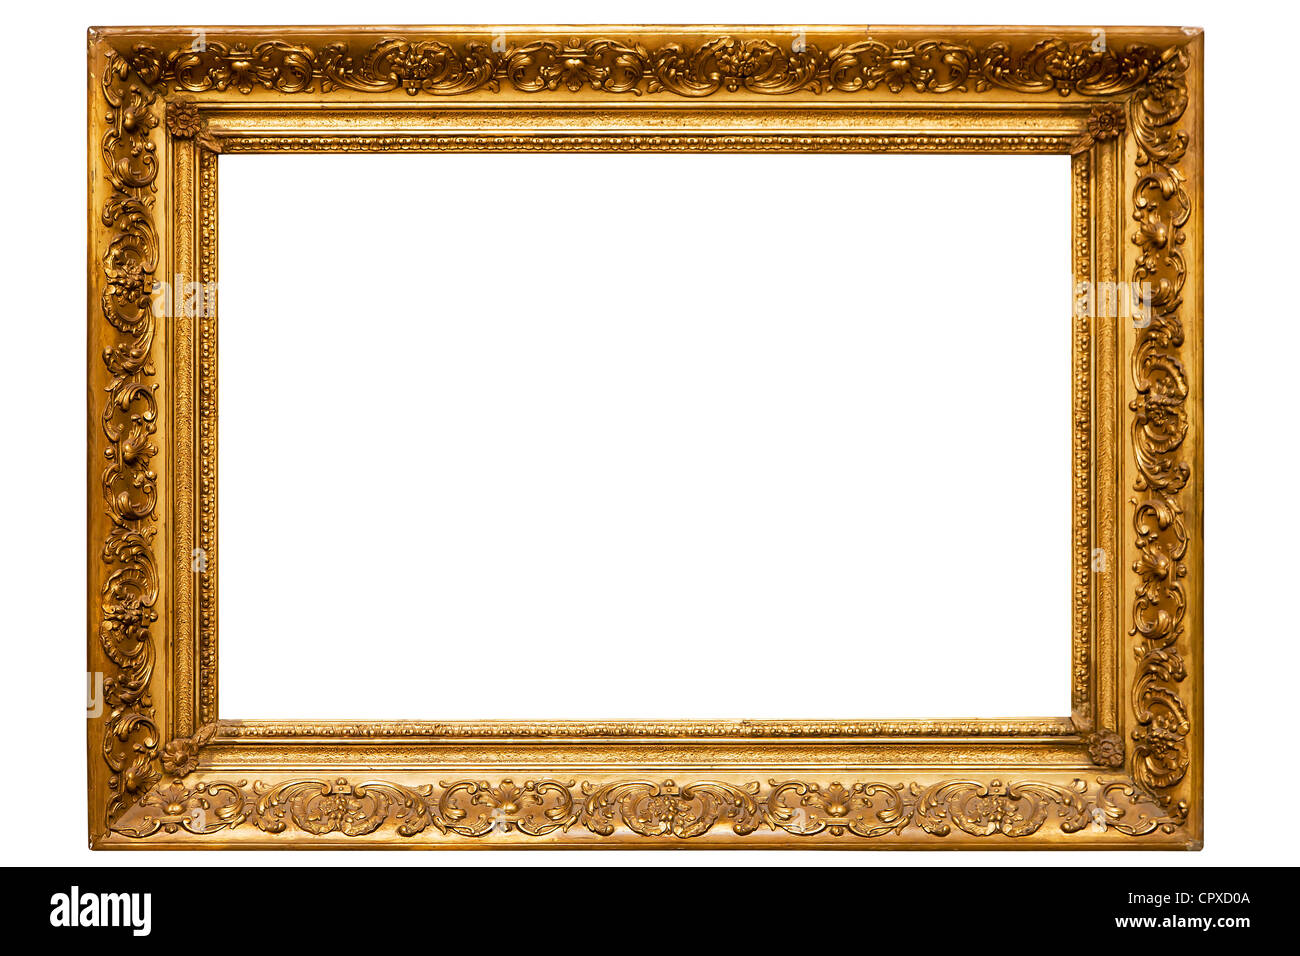 Gilded picture frame, horizontal Stock Photo: 48524122 - Alamy